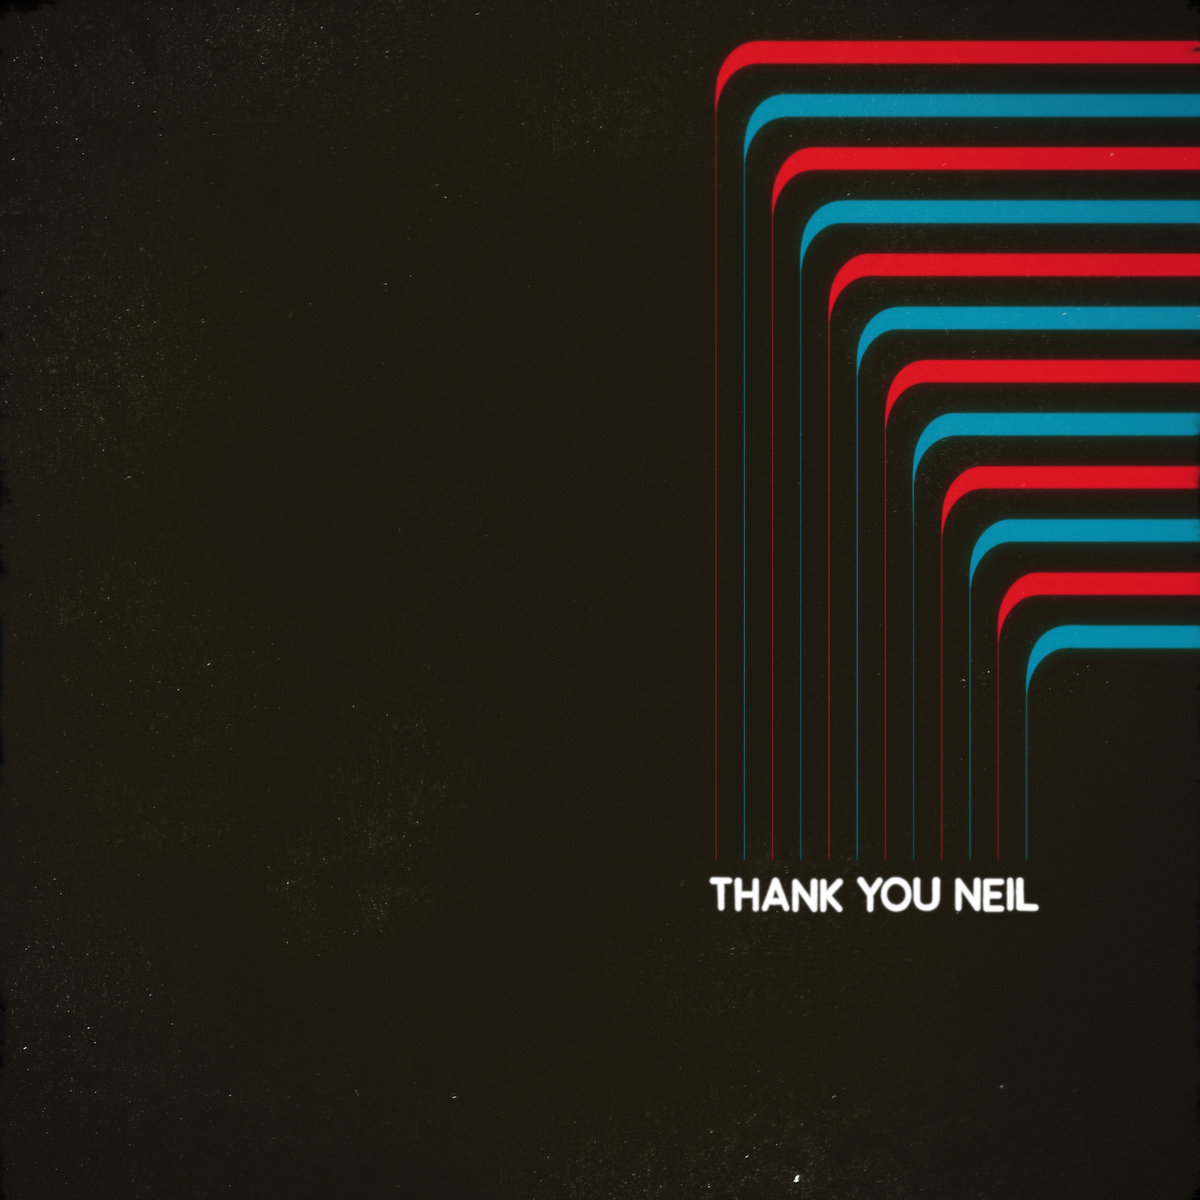 Dumbo Gets Mad - Quasar @ 'Thank You Neil' album (alternative, los angeles)